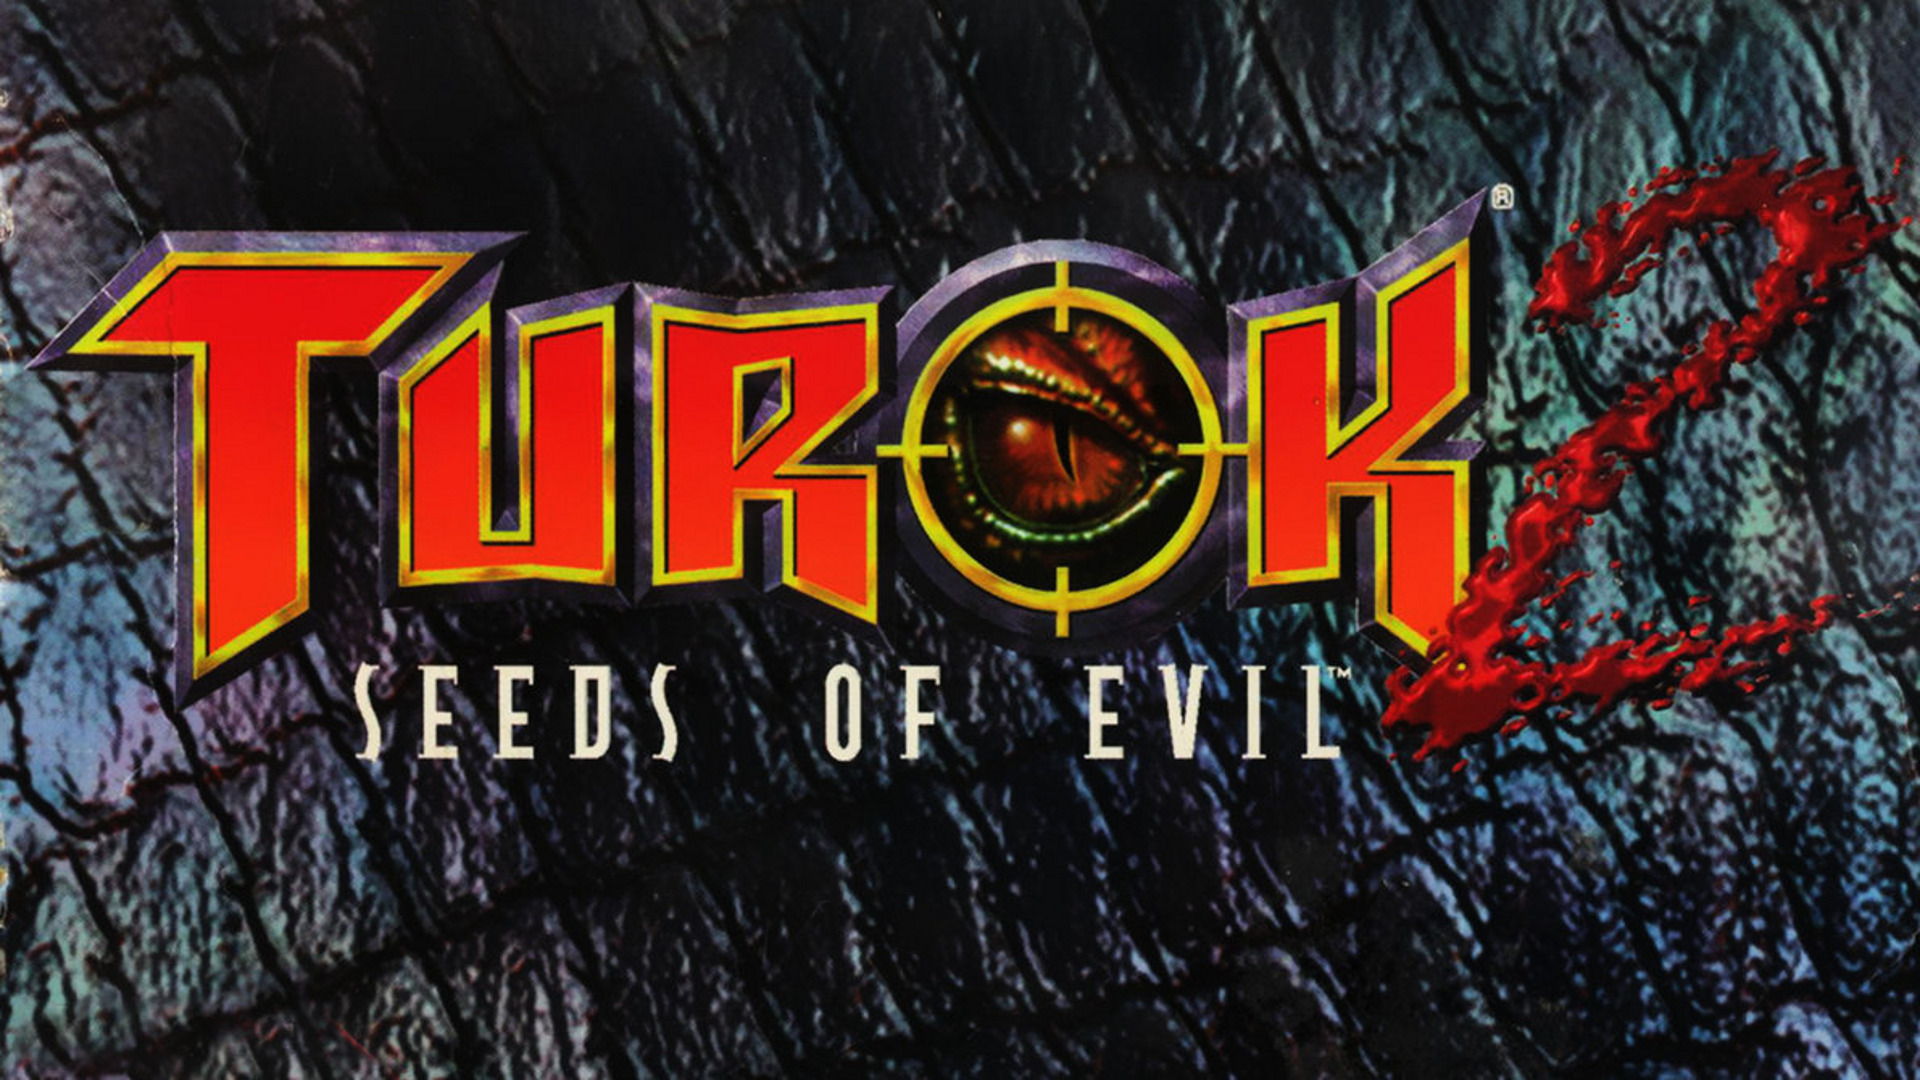 Turok 2 Ascension mod improves textures, adds double jump, brings